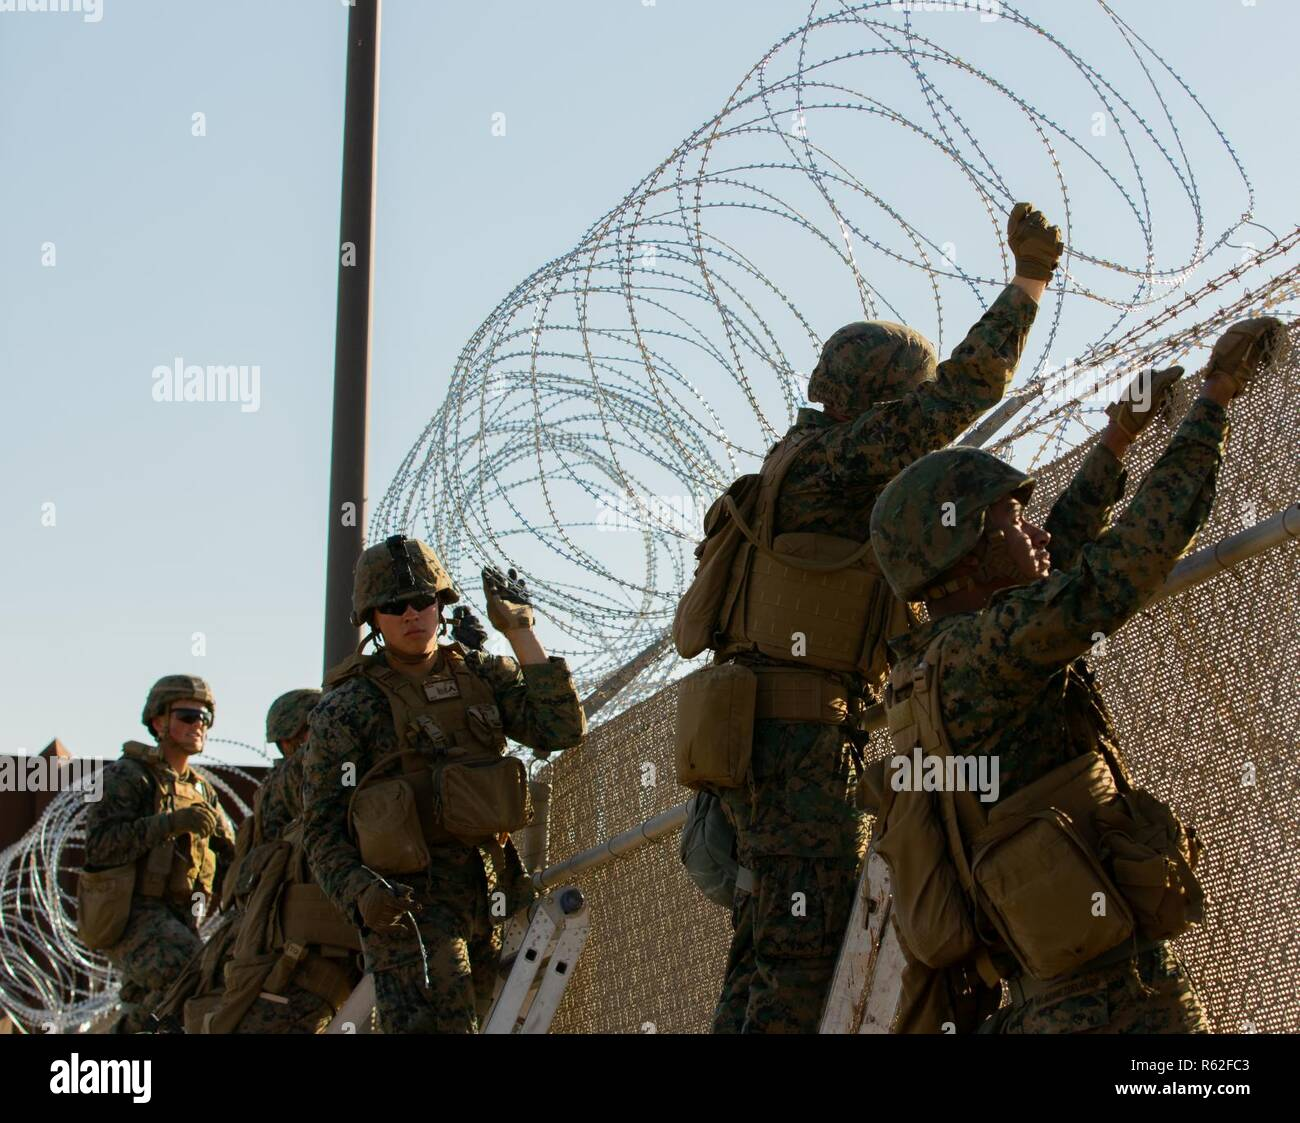 U.S. Marines from Special Purpose Marine Air-Ground Task Force 7 use concertina wire to strengthen the Calexico East Port of Entry in Calexico, California Nov. 18, 2018.  U.S. Northern Command is providing military support to the Department of Homeland Security and U.S. Customs and Border Protection to secure the Southern border of the United States. - Stock Image